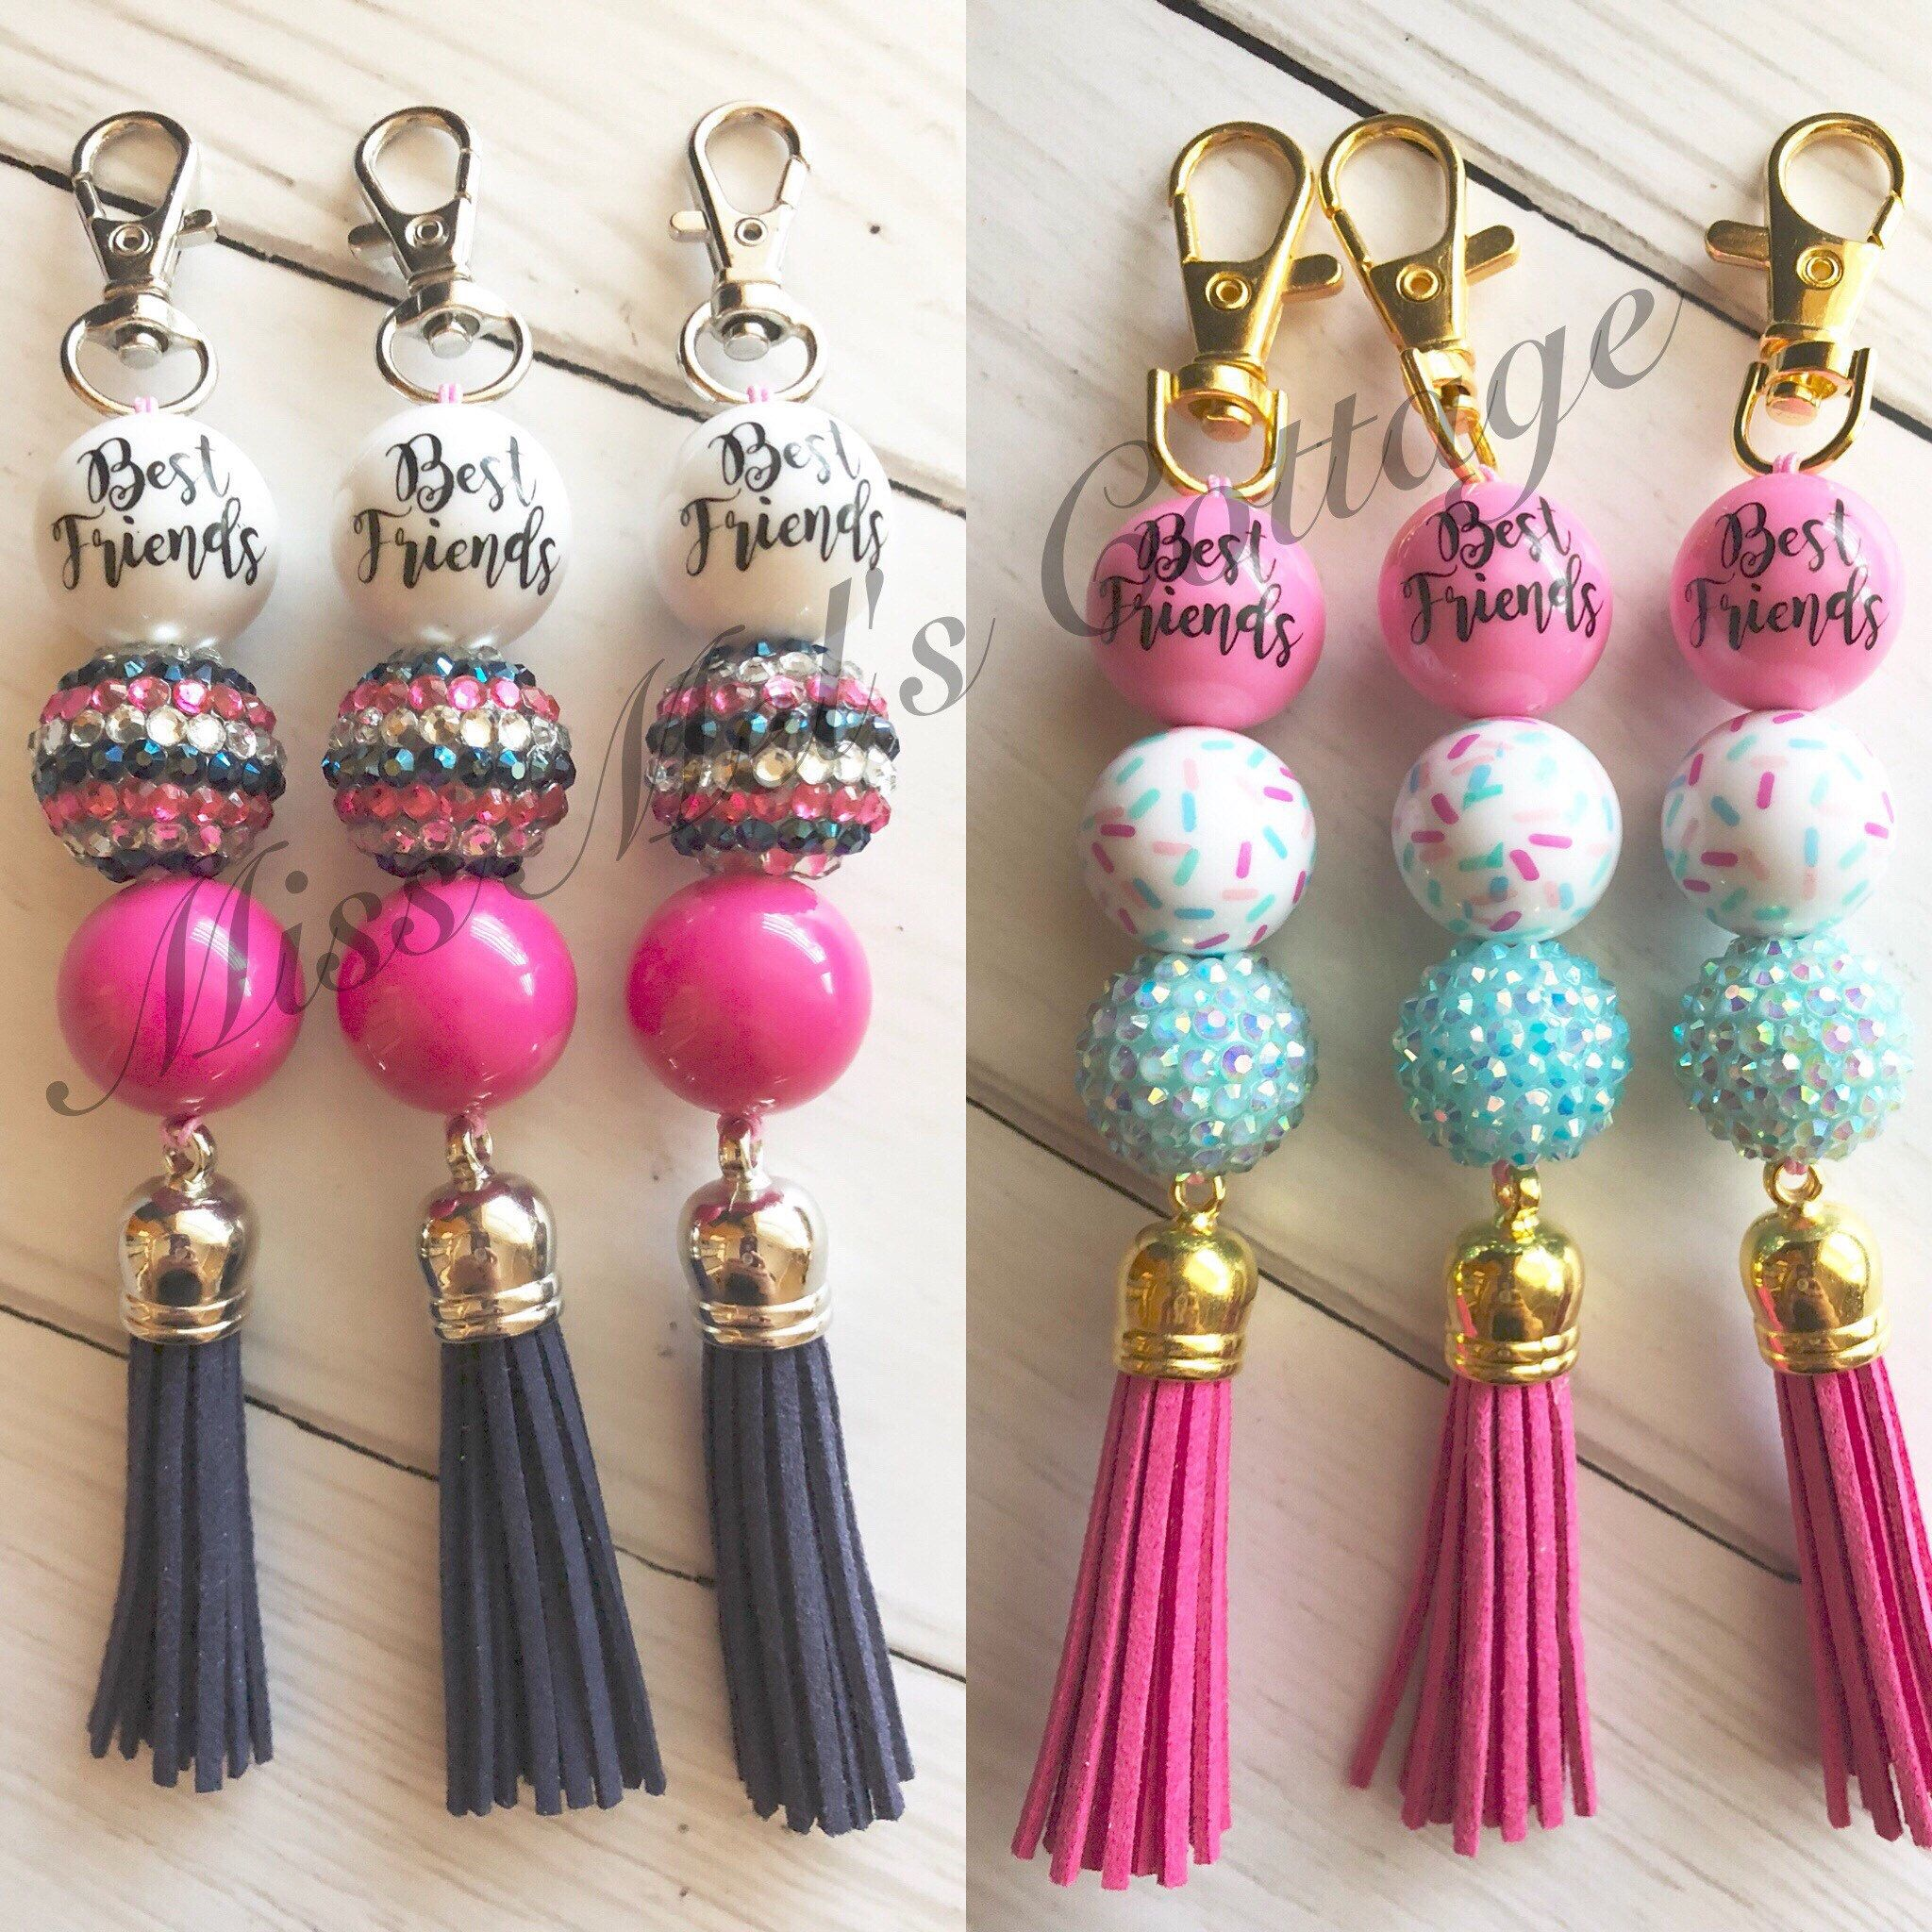 Born to Dance beaded keychains